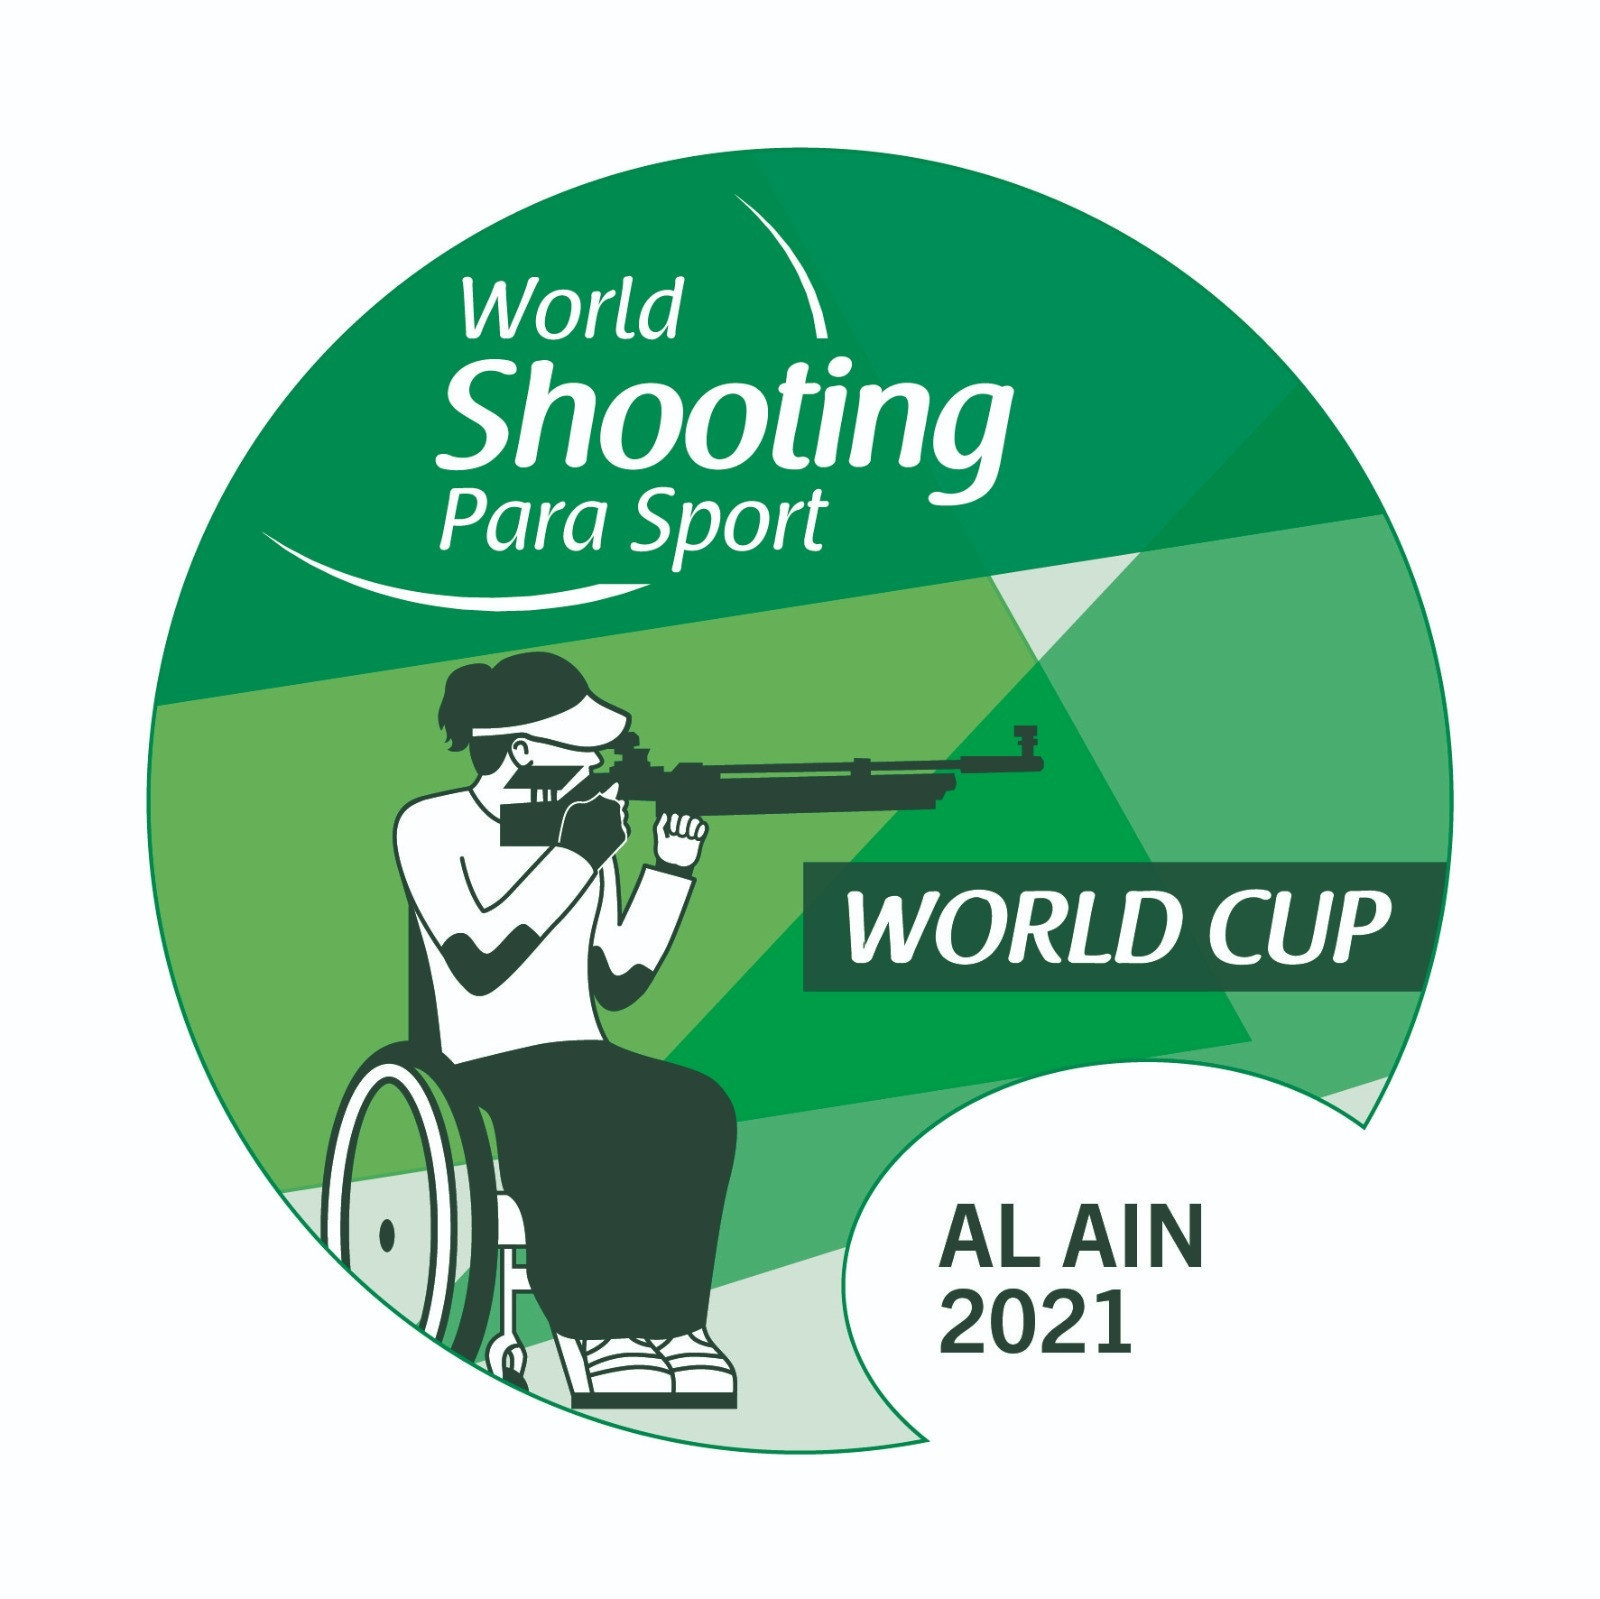 Narwal sets world record to win gold at World Shooting Para Sport World Cup